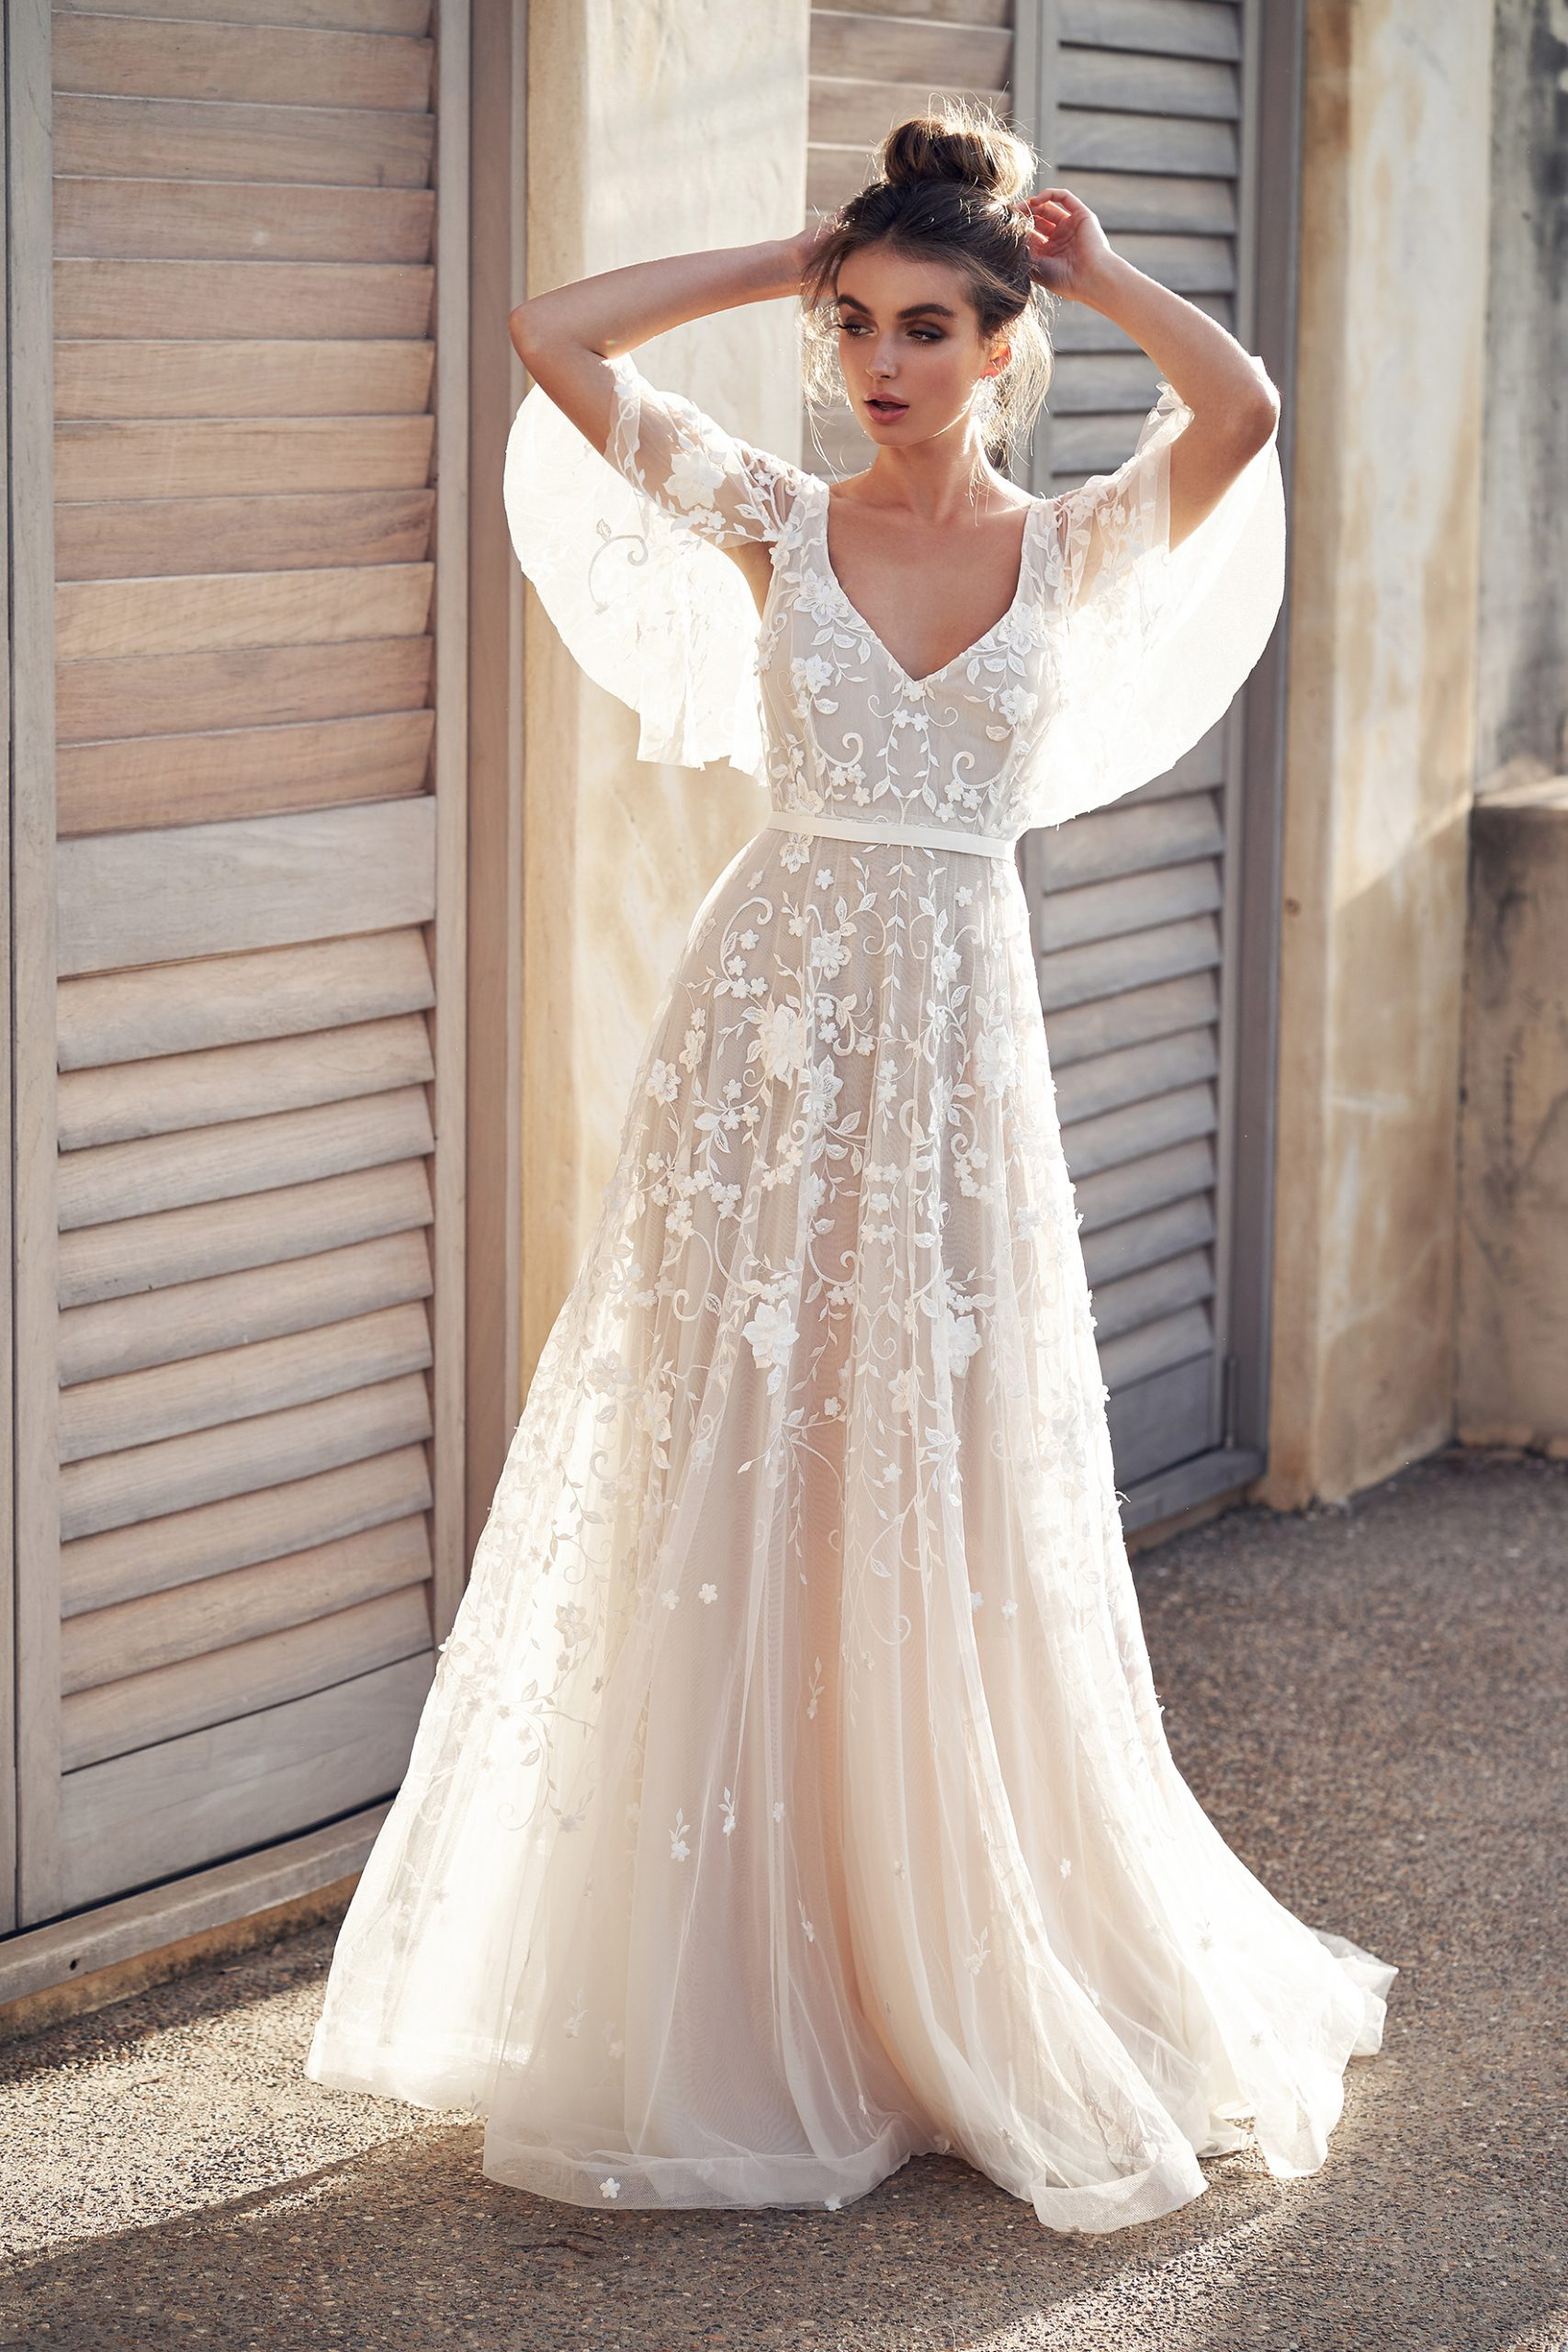 3d Floral Embroidered V Neck A Line Wedding Dress With Draped Sleeves Kleinfeld Bridal